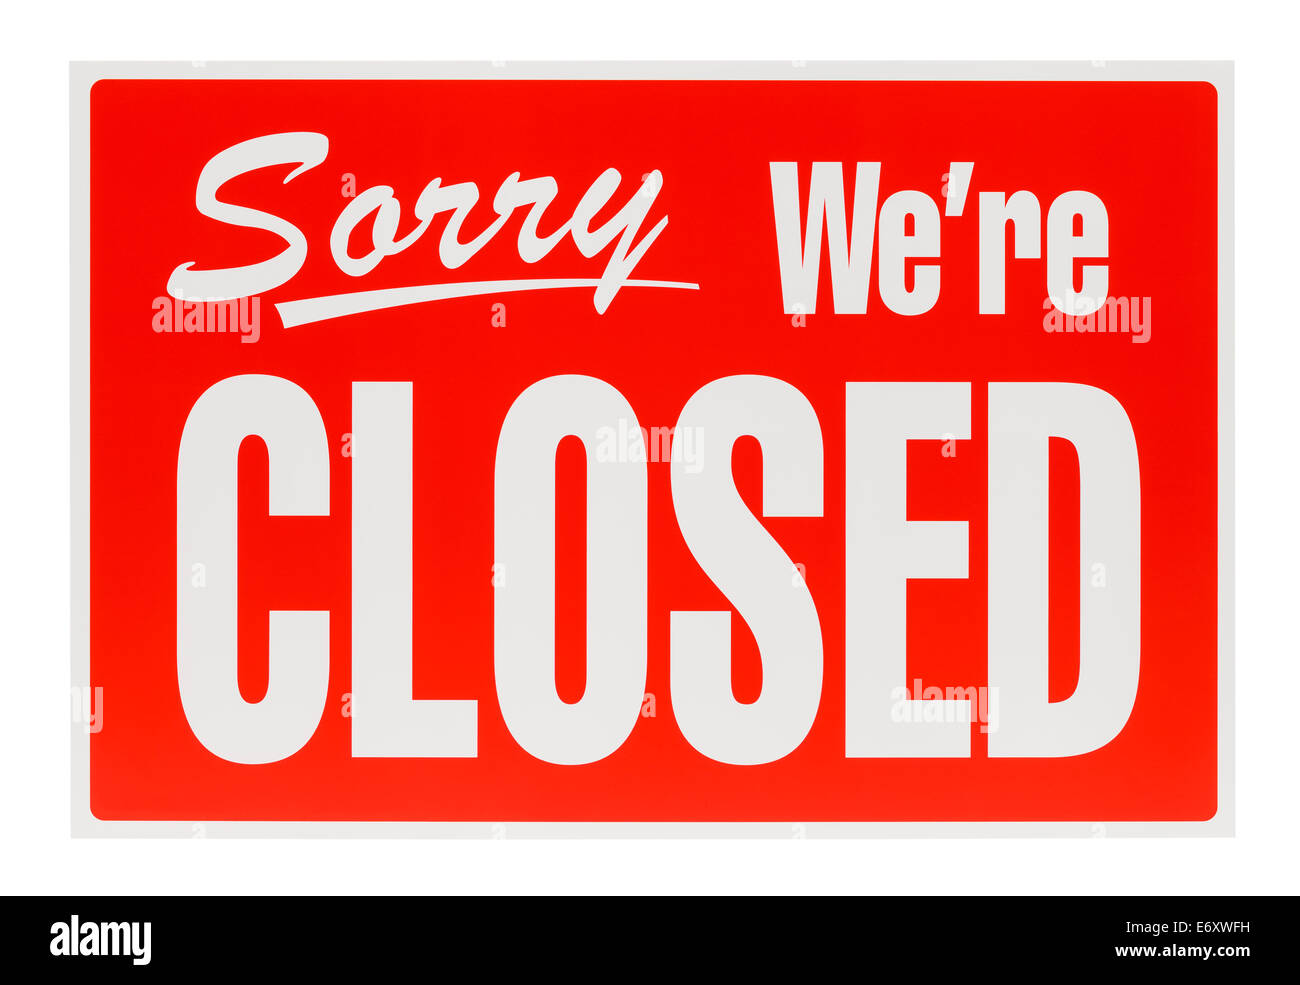 Plastic Sorry We're Closed Sign Isolated on White Background. - Stock Image